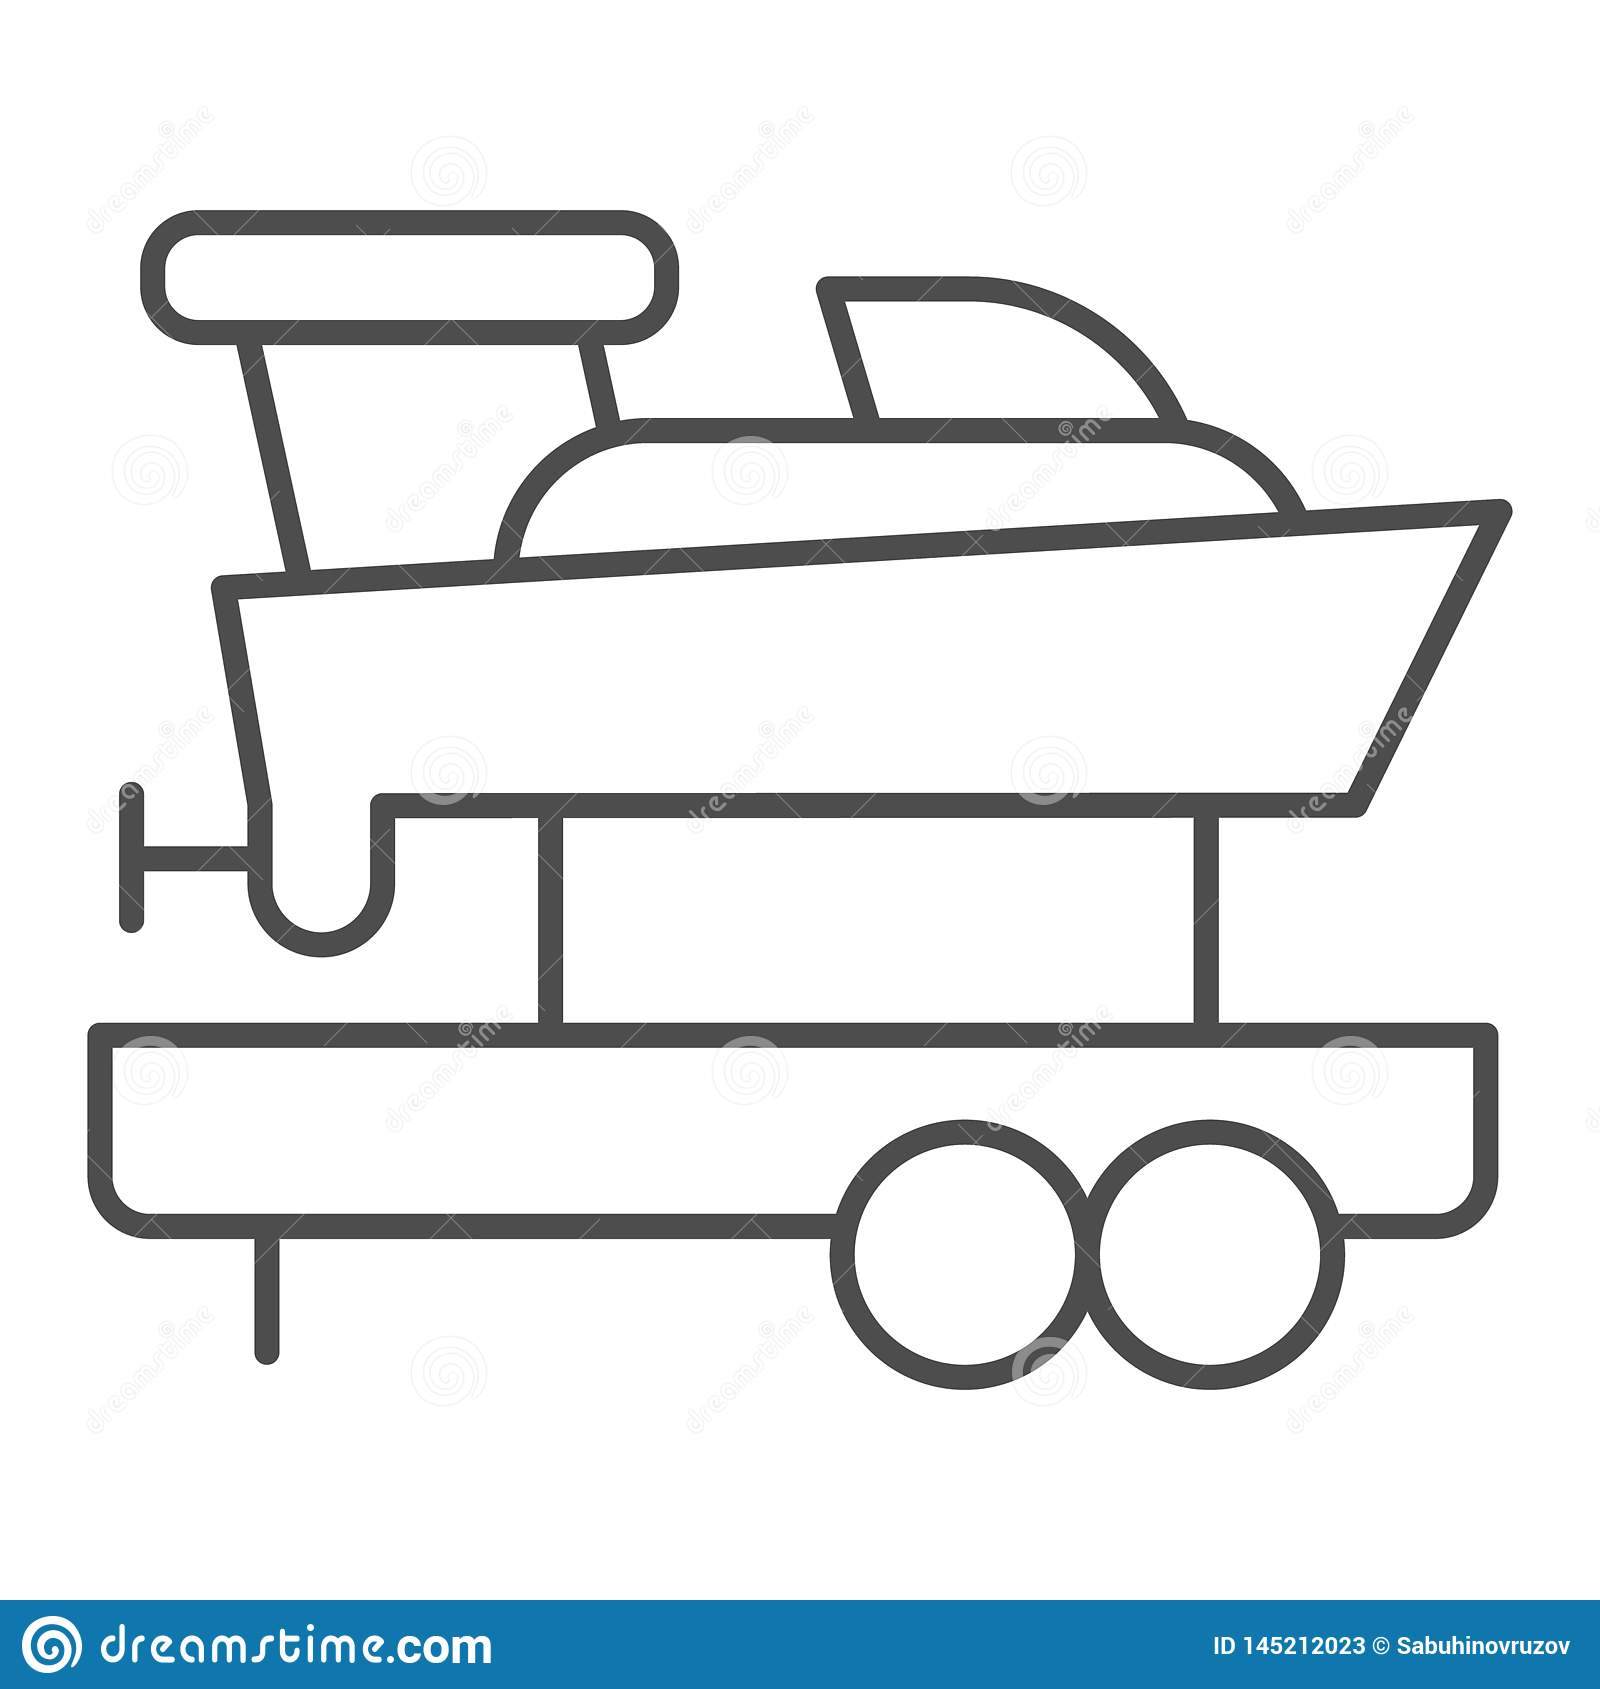 Boat with trailer thin line icon. Ship transportation vector illustration isolated on white. Sailboat on truck outline